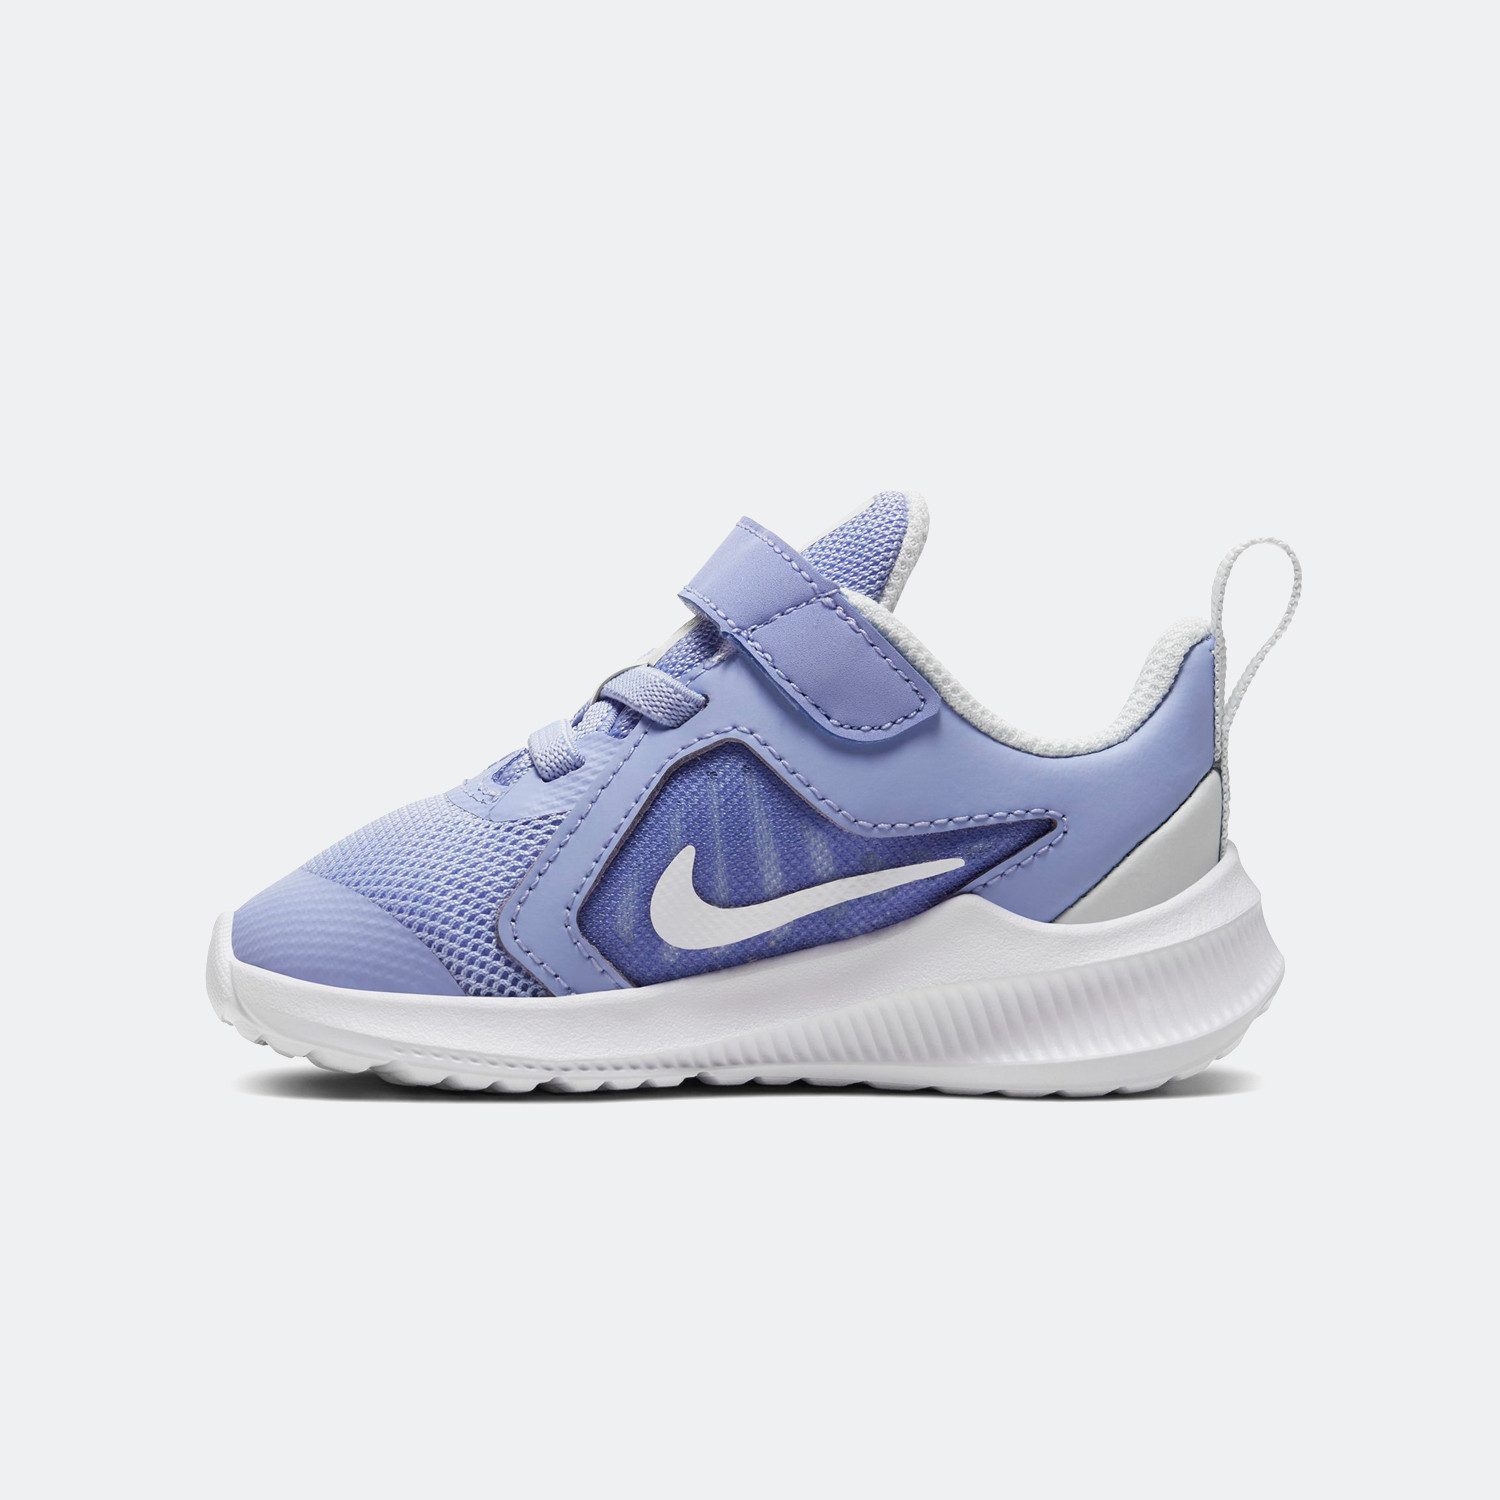 Nike Downshifter 10 Βρεφικά Παπούτσια (9000061386_48303)